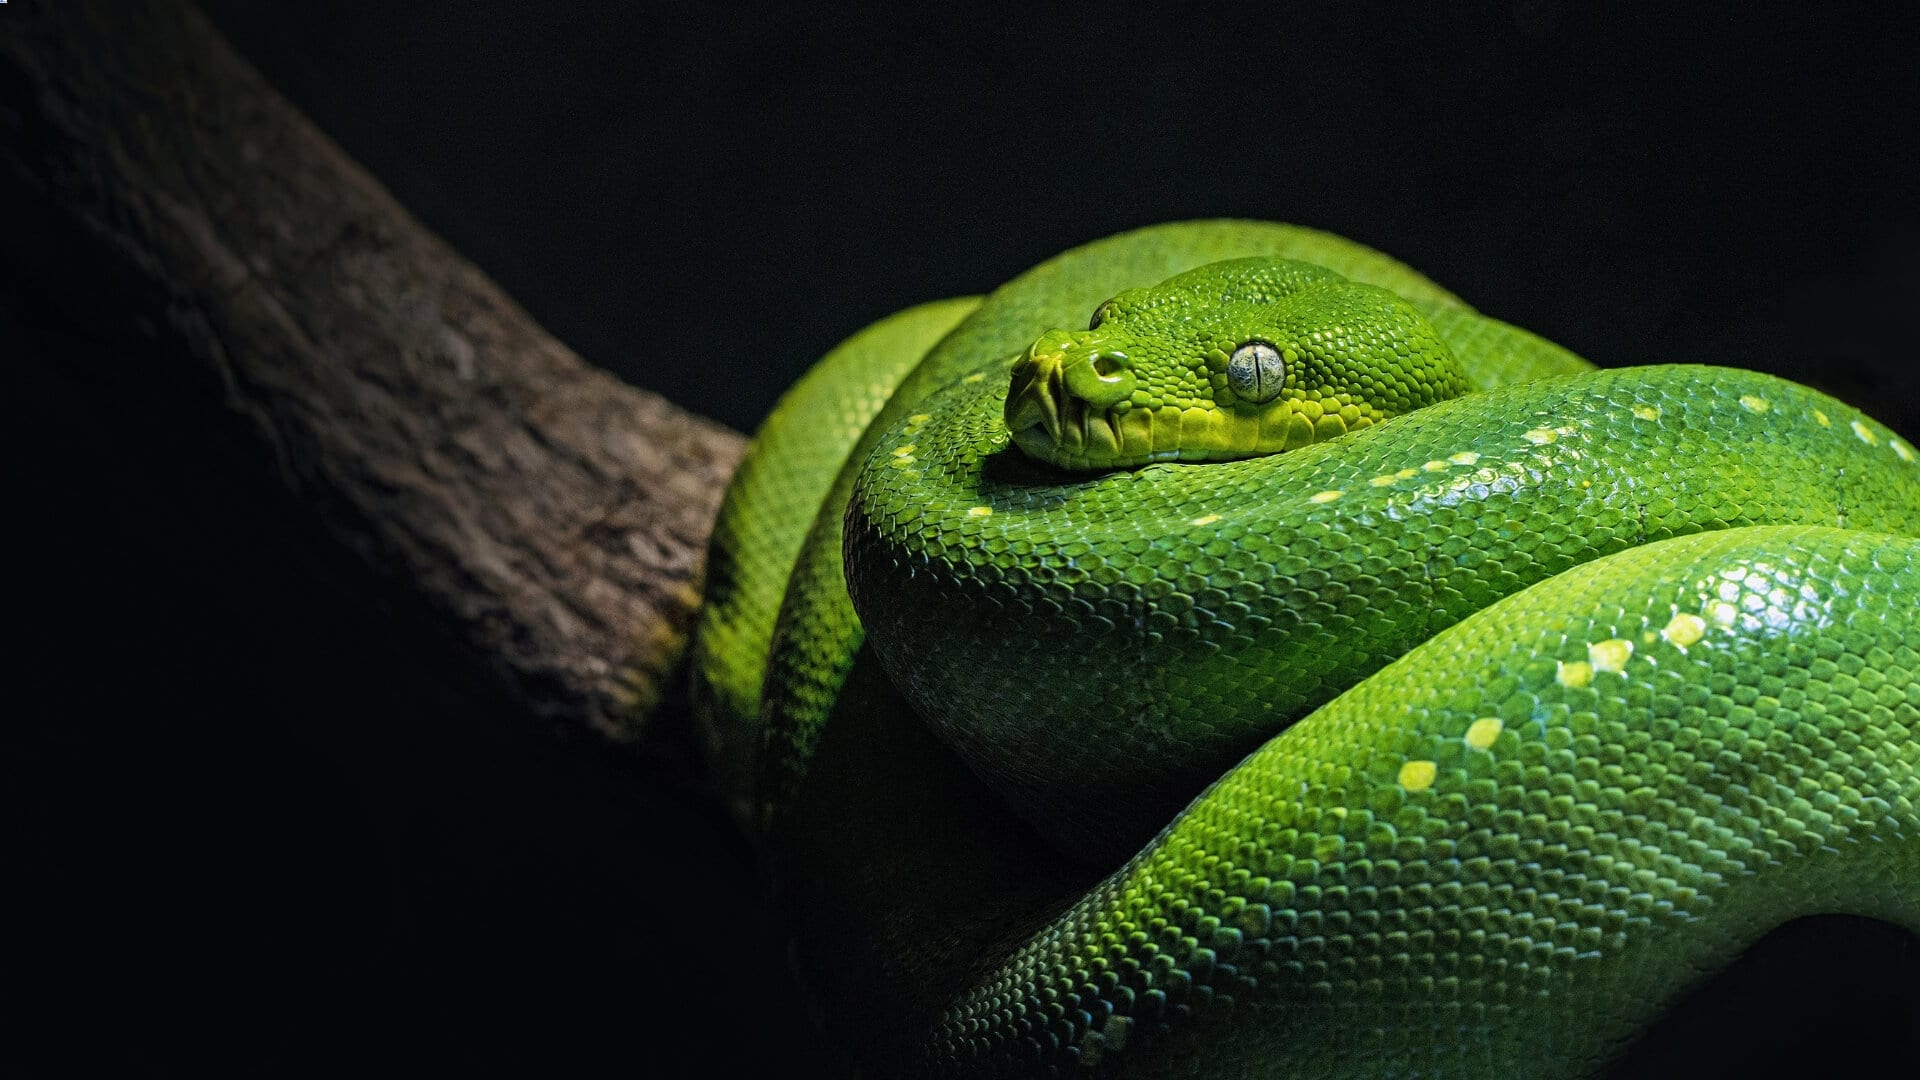 A green snake is laying on a stick during night in Asia.